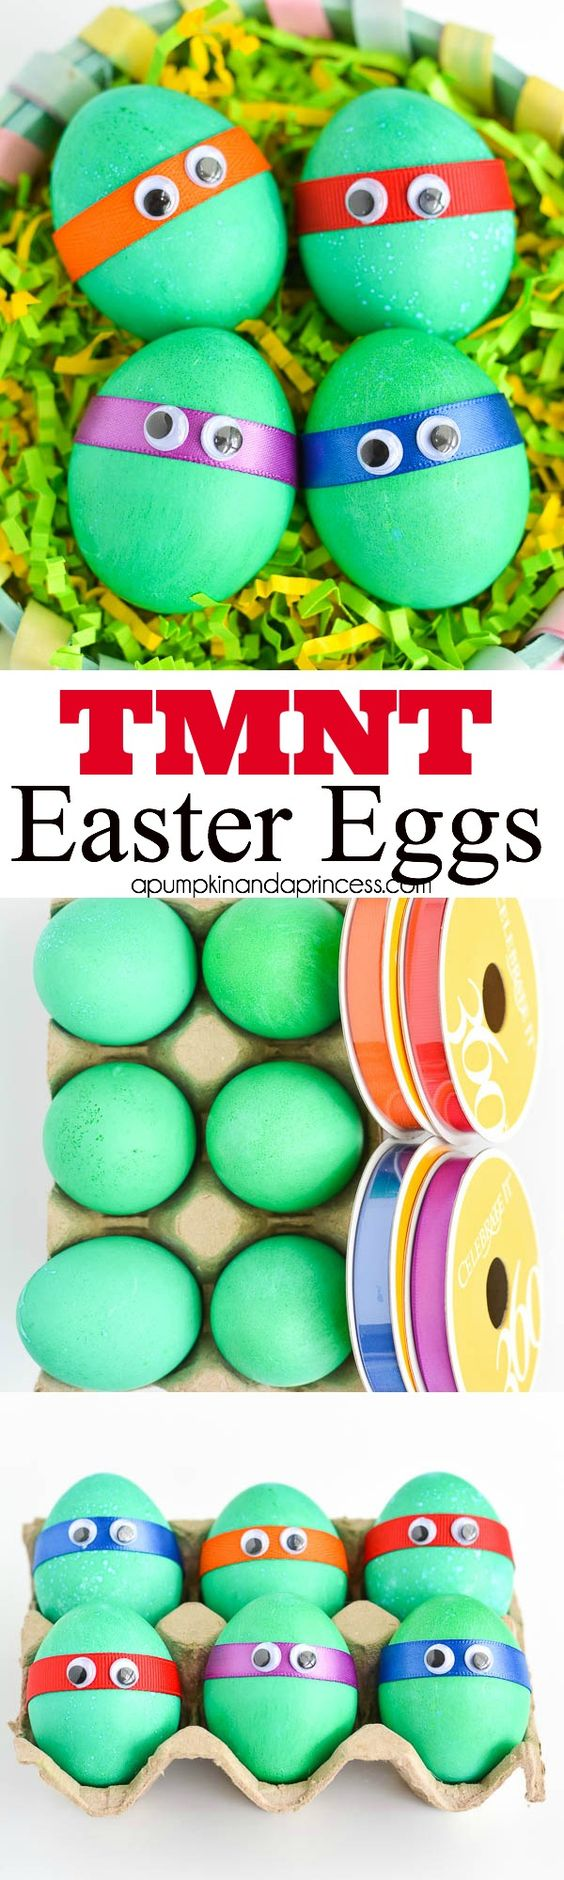 Dyed-TMNT-Easter-Eggs: